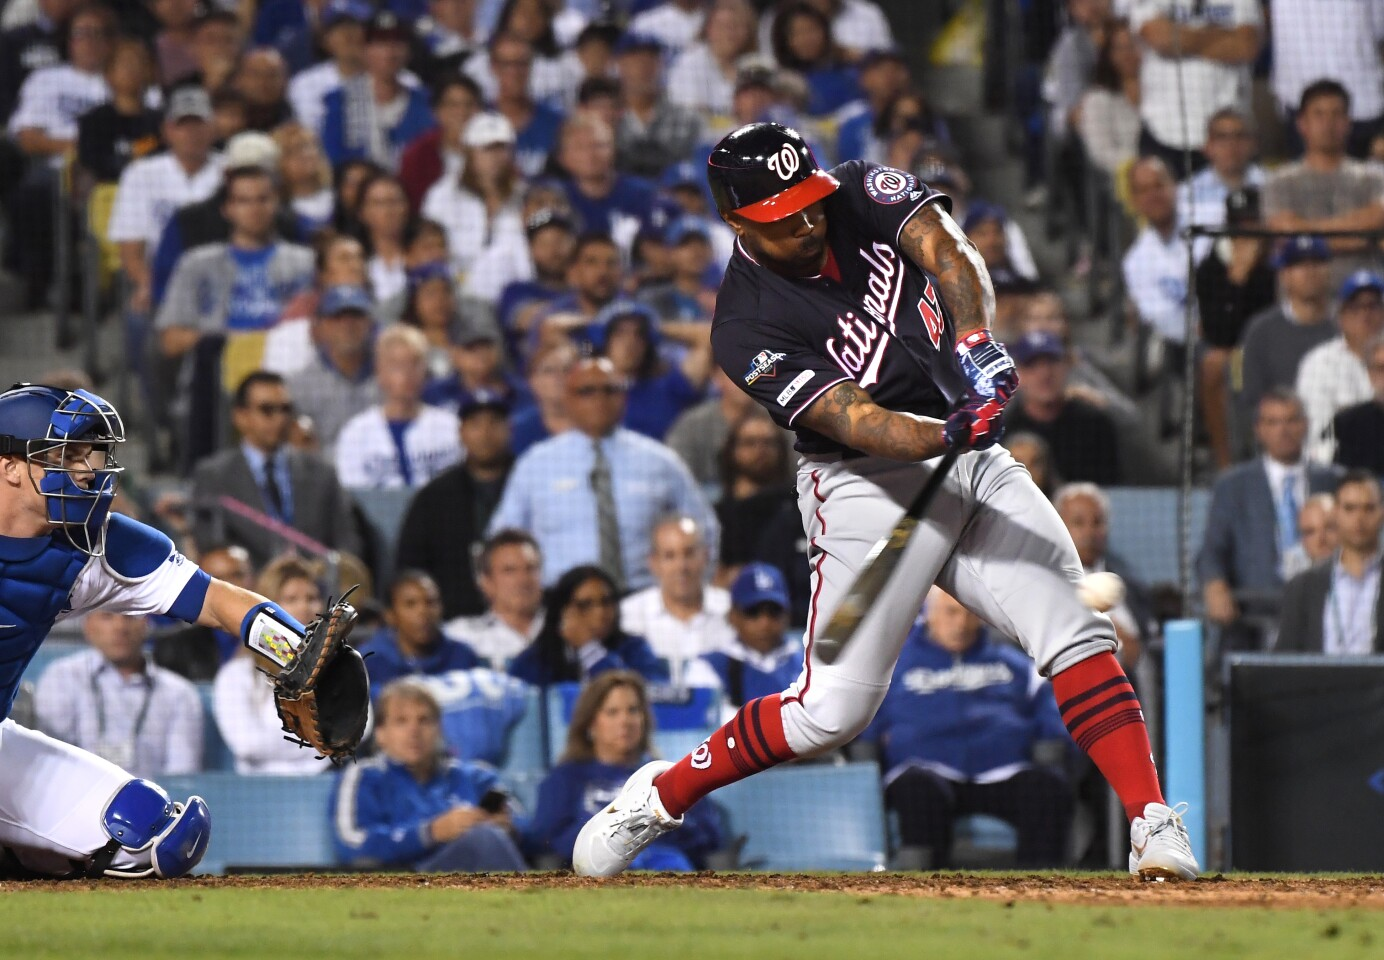 LOS ANGELES, CALIFORNIA OCTOBER 9, 2019-Nationals Howie Kendrick hits a grand slam agaisnt the Dodgers in the 10th inning in Game 5 of the NLDS at Dodger Stadium Wednesday. (Wally Skalij/Los Angeles Times)